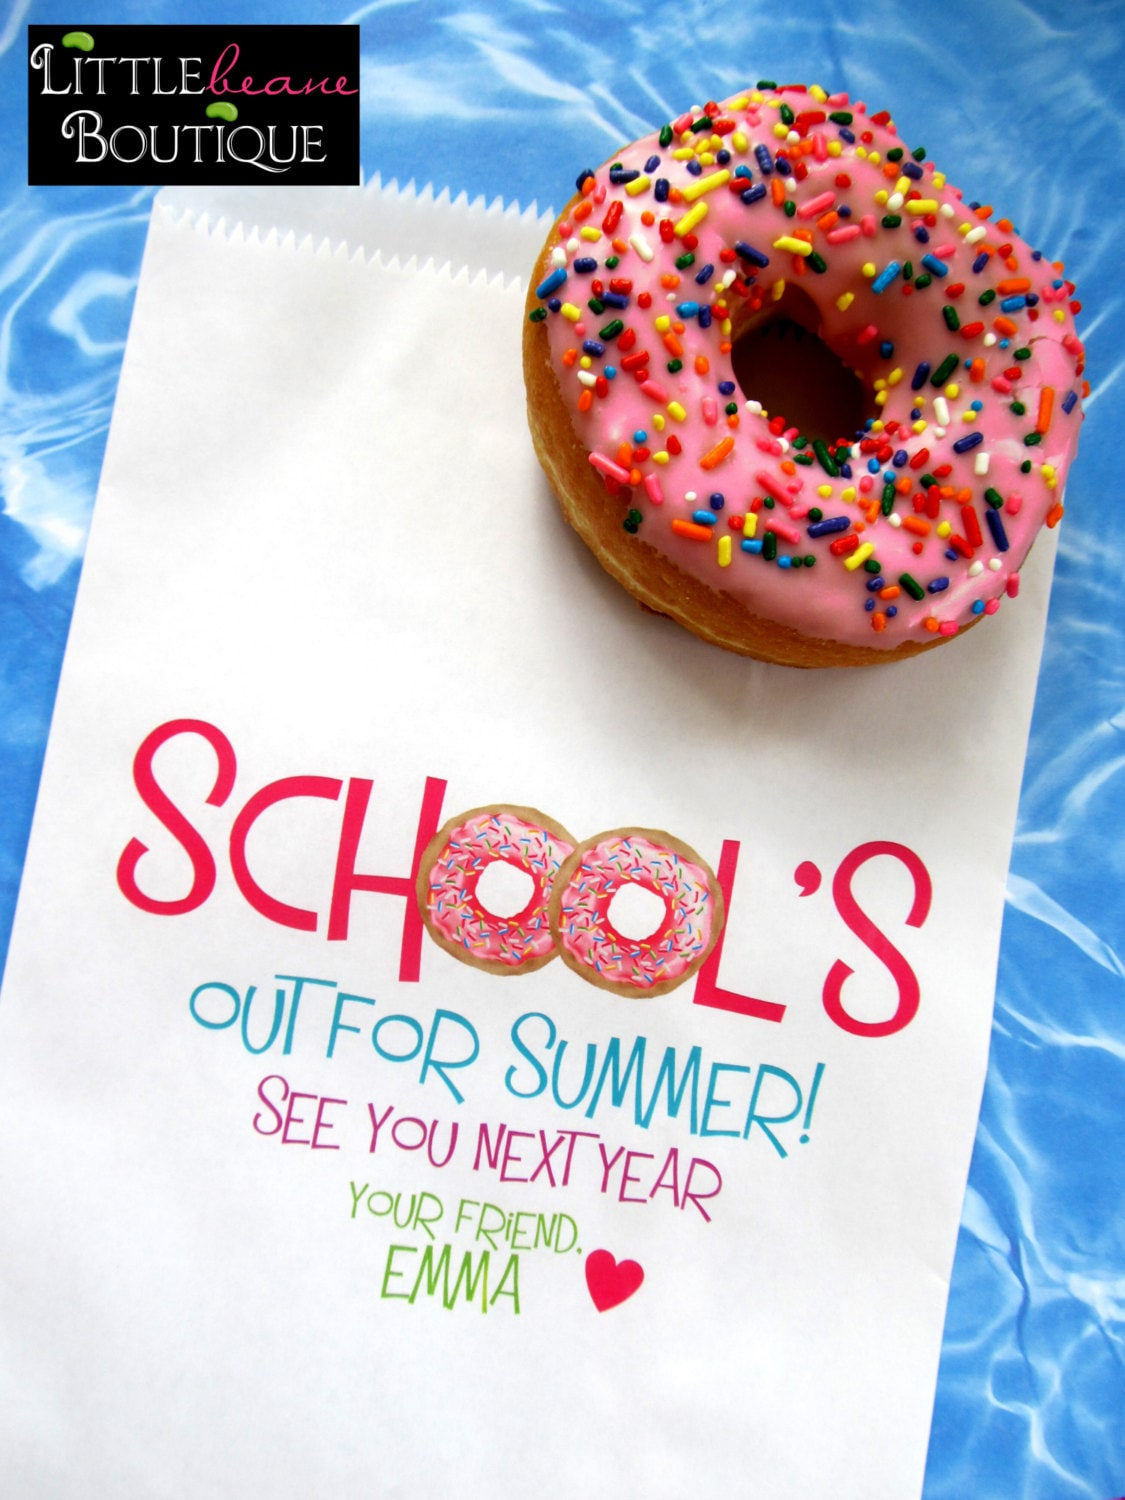 Wedding Favor Donut Bags : Donut bags Schools Out Donut party Favor by LittlebeaneBoutique